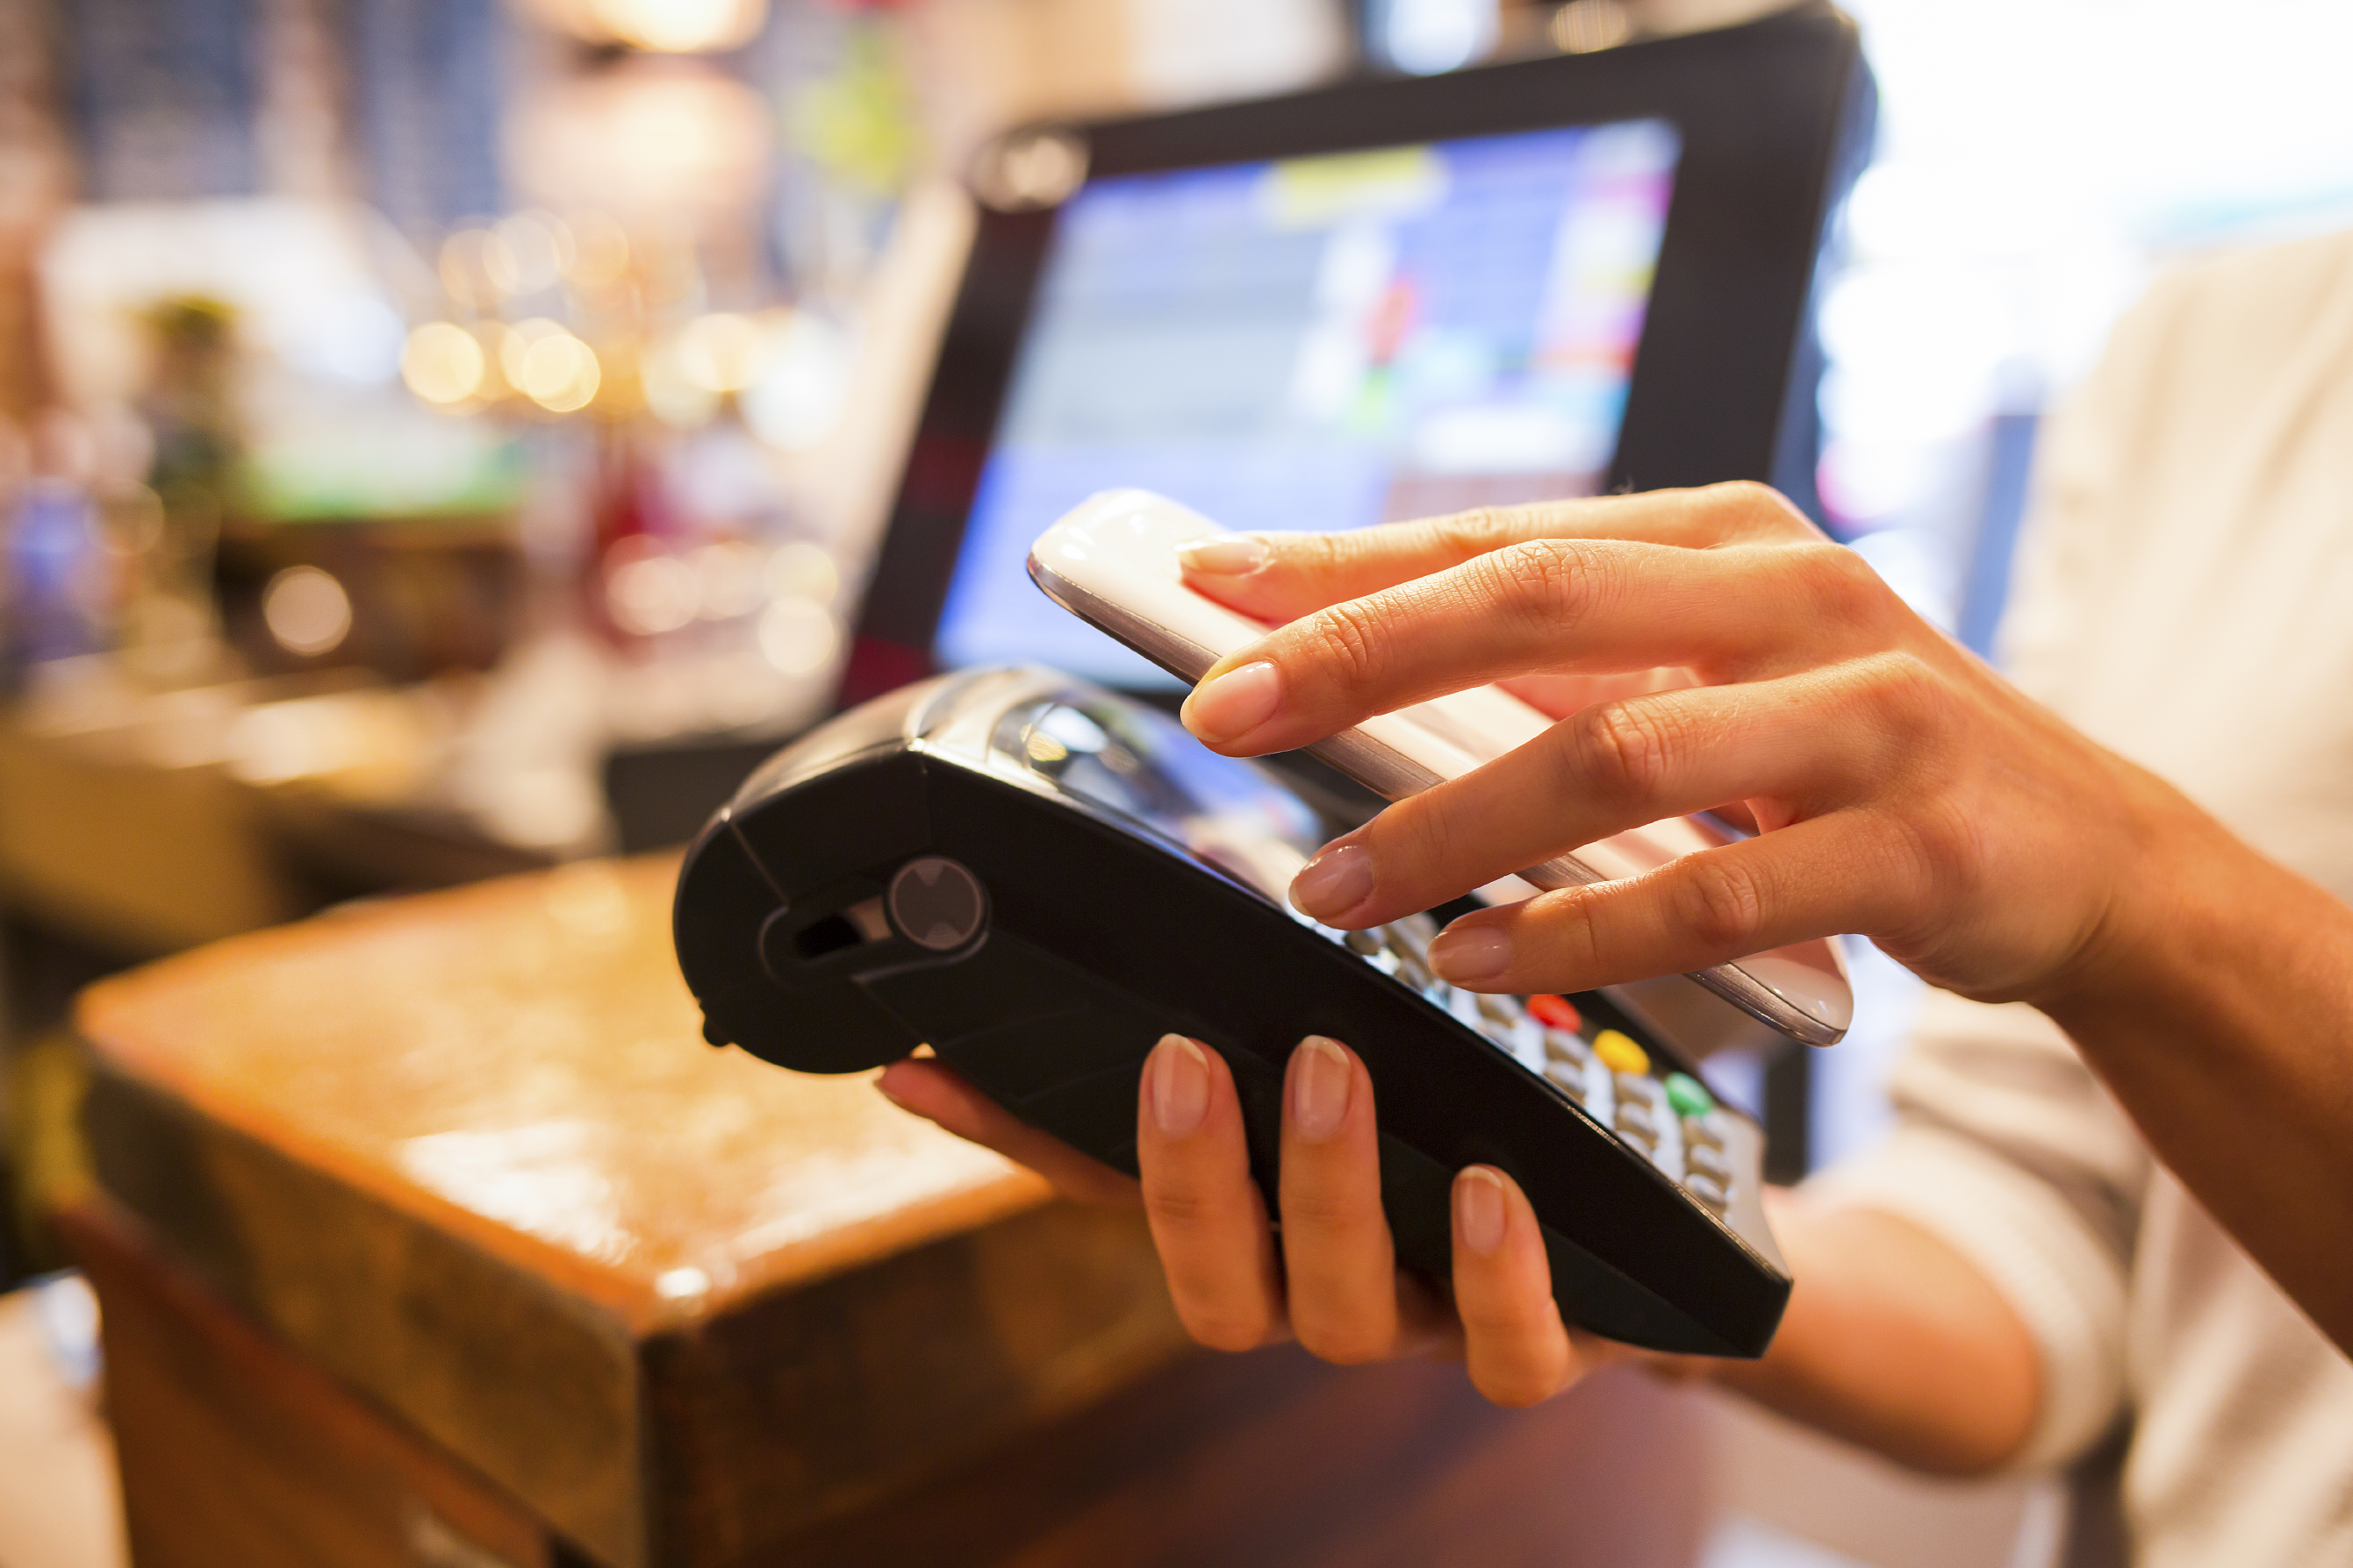 Paying_with_NFC_Tech_on_Mobile_Phone